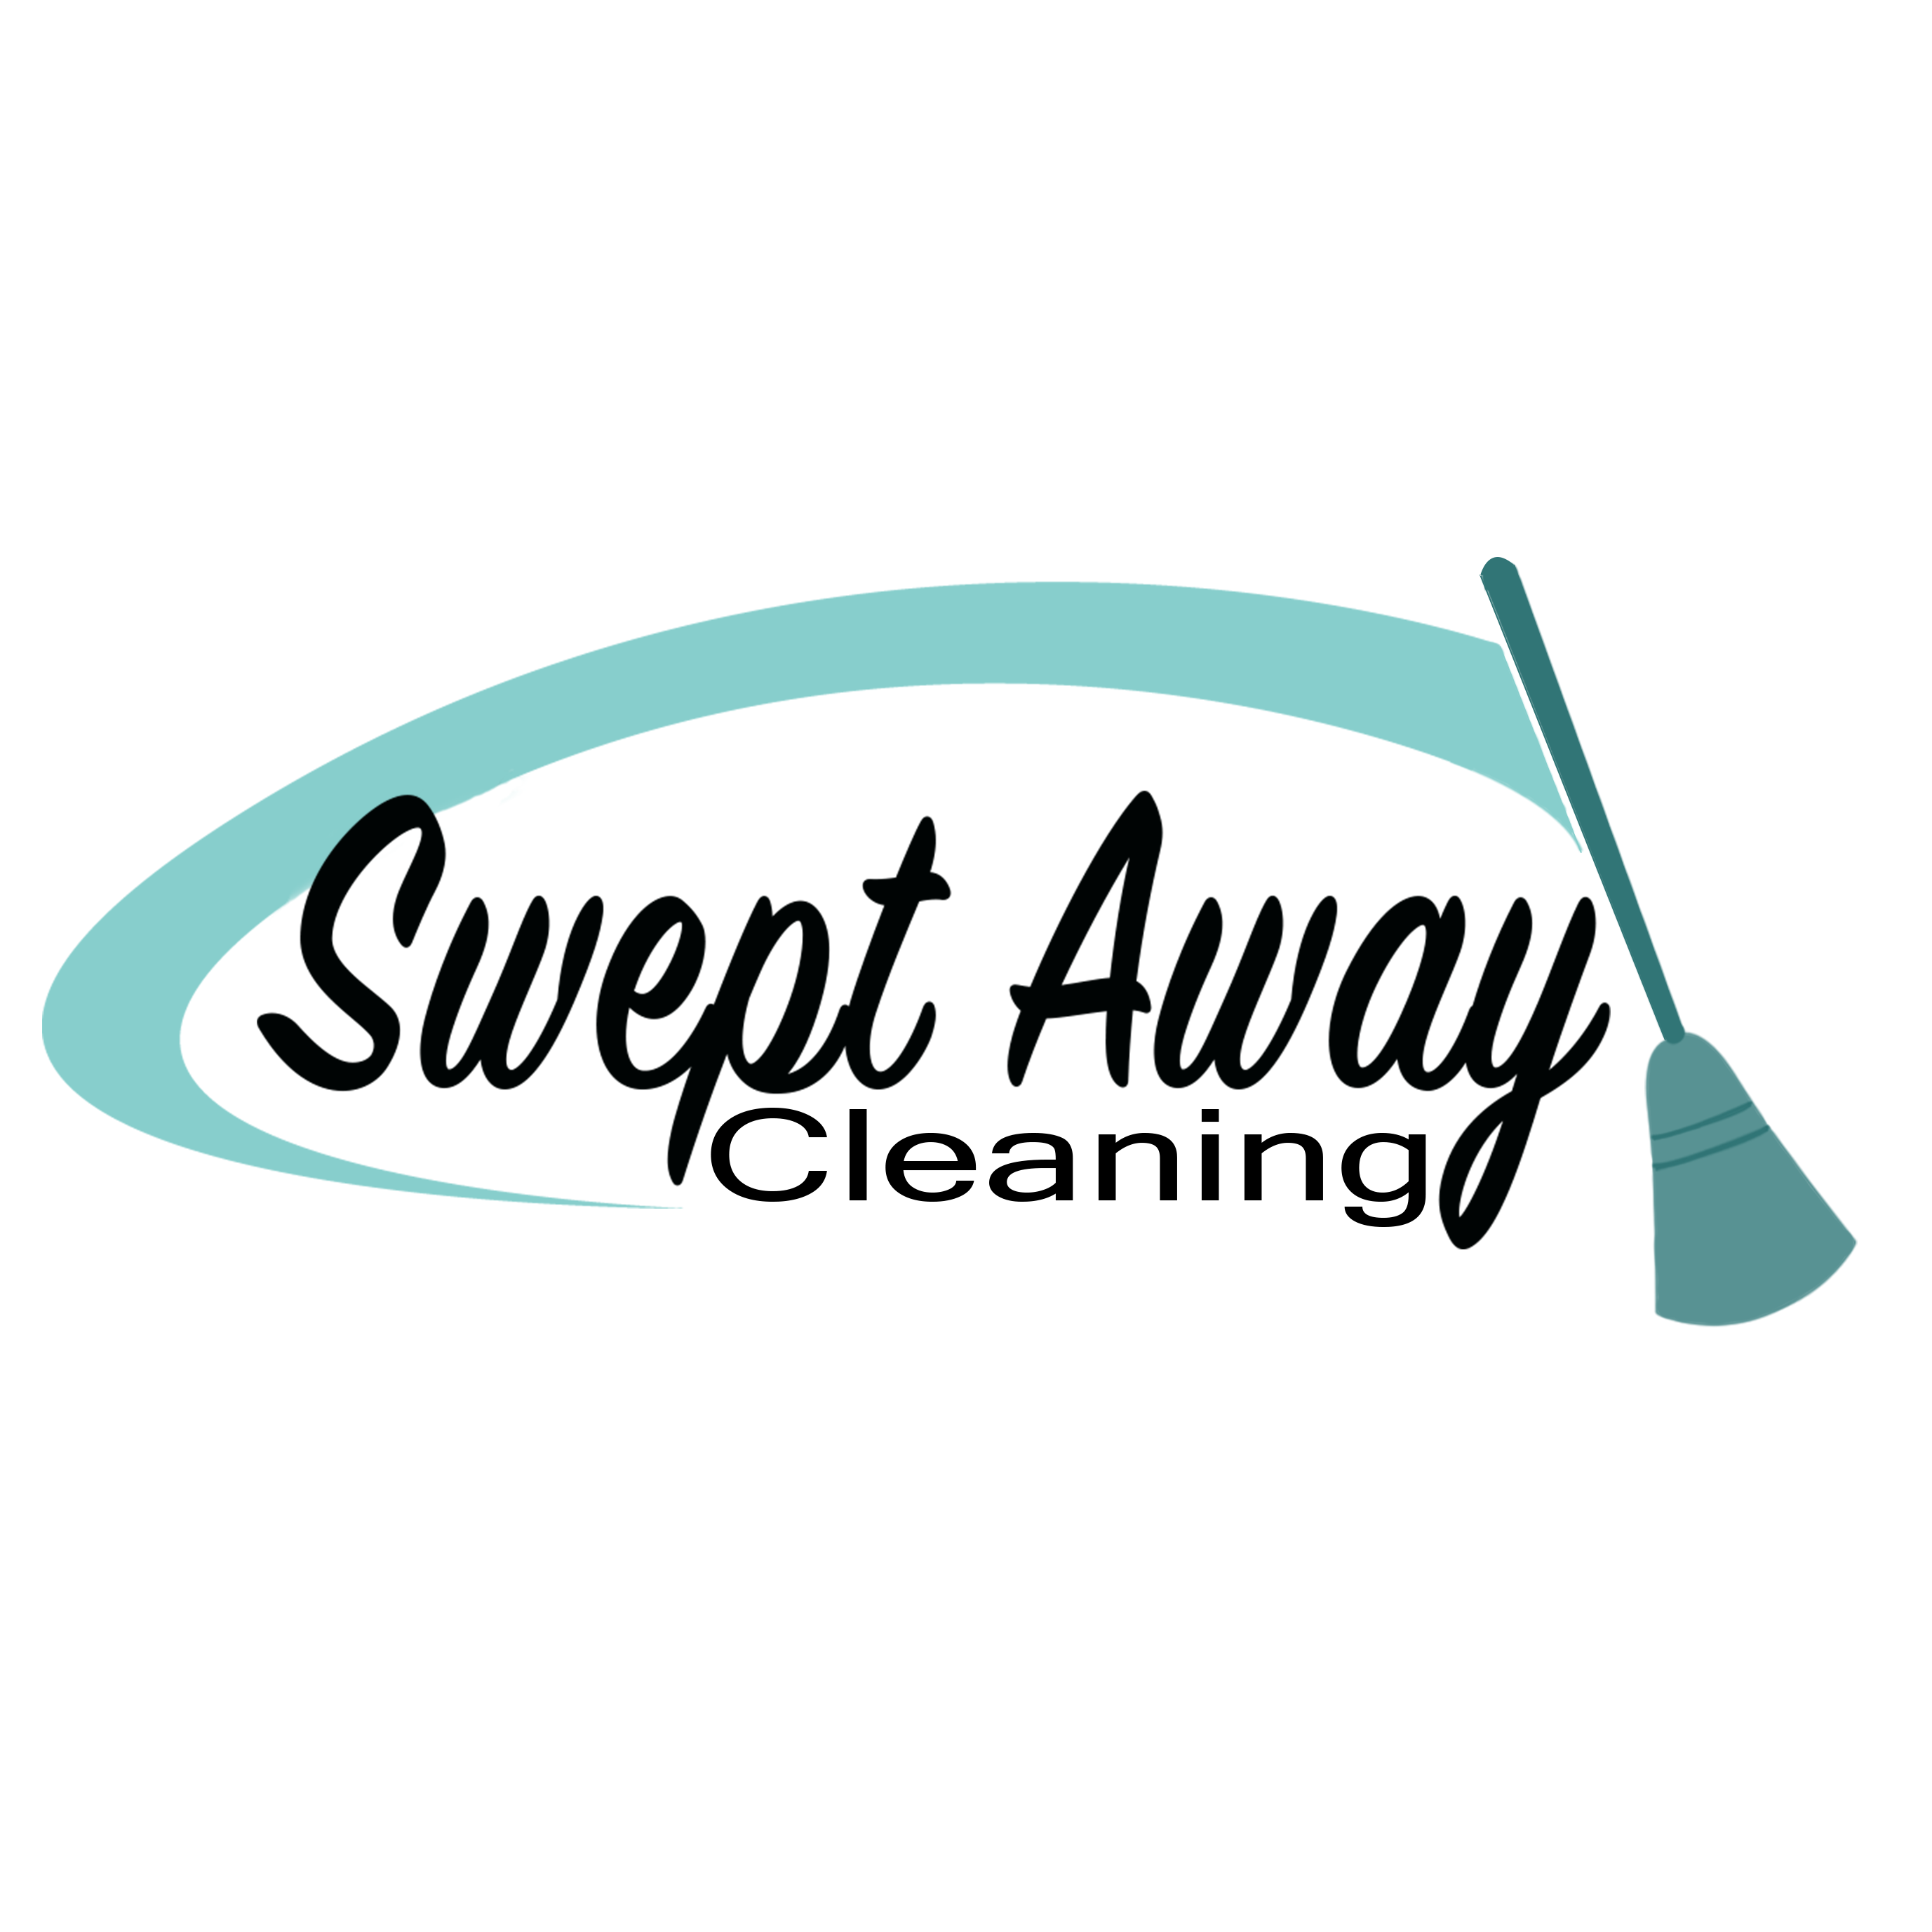 Swept Away Cleaning